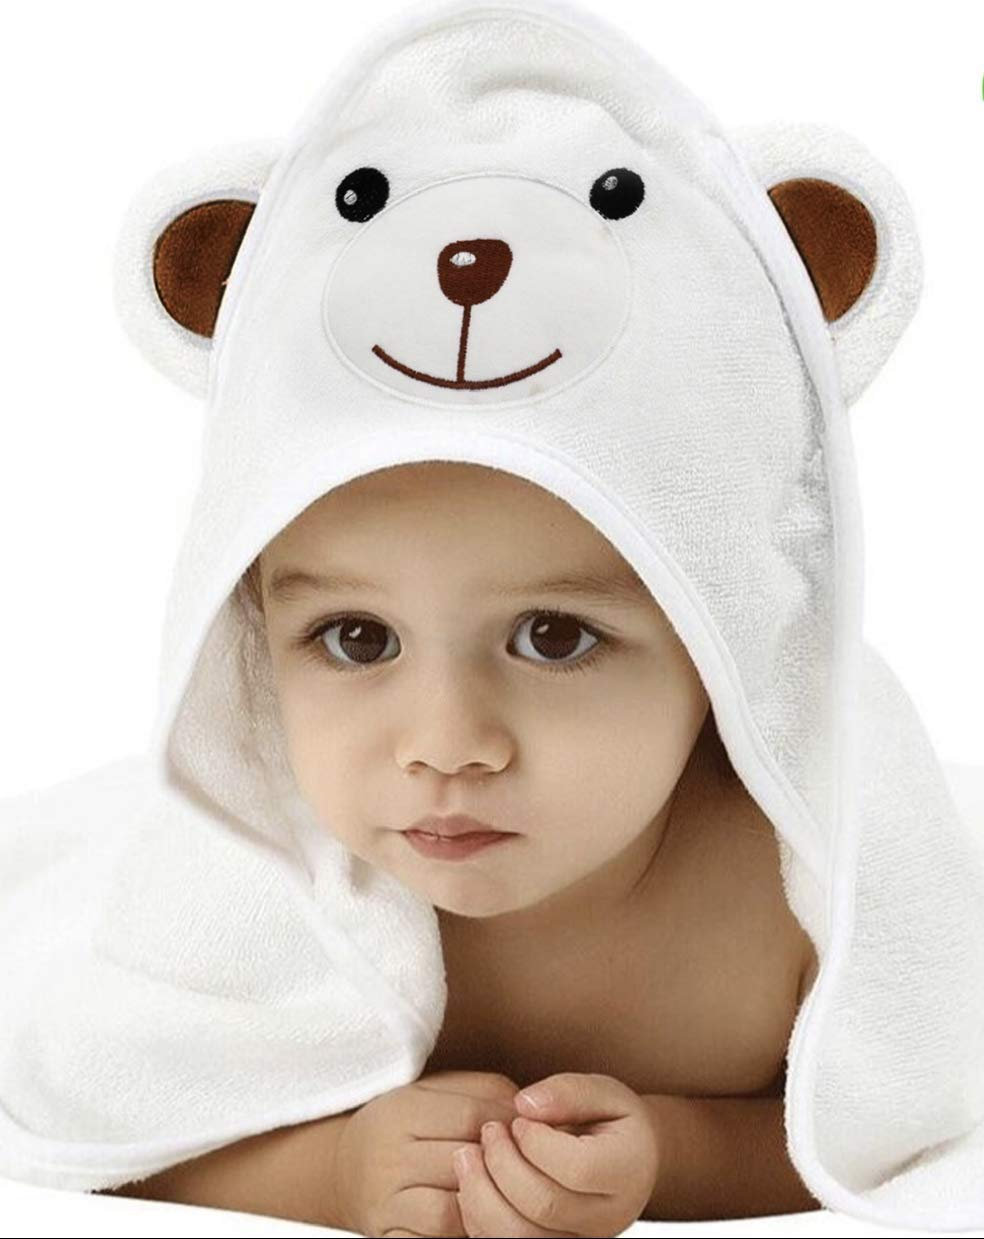 ClairBaby Premium Ultra Soft Organic Bamboo Baby Hooded Towel with Washcloth - Absorbent & Naturally Hypoallergenic - Large Hooded Towel for Baby & Toddlers for Boys & Girls